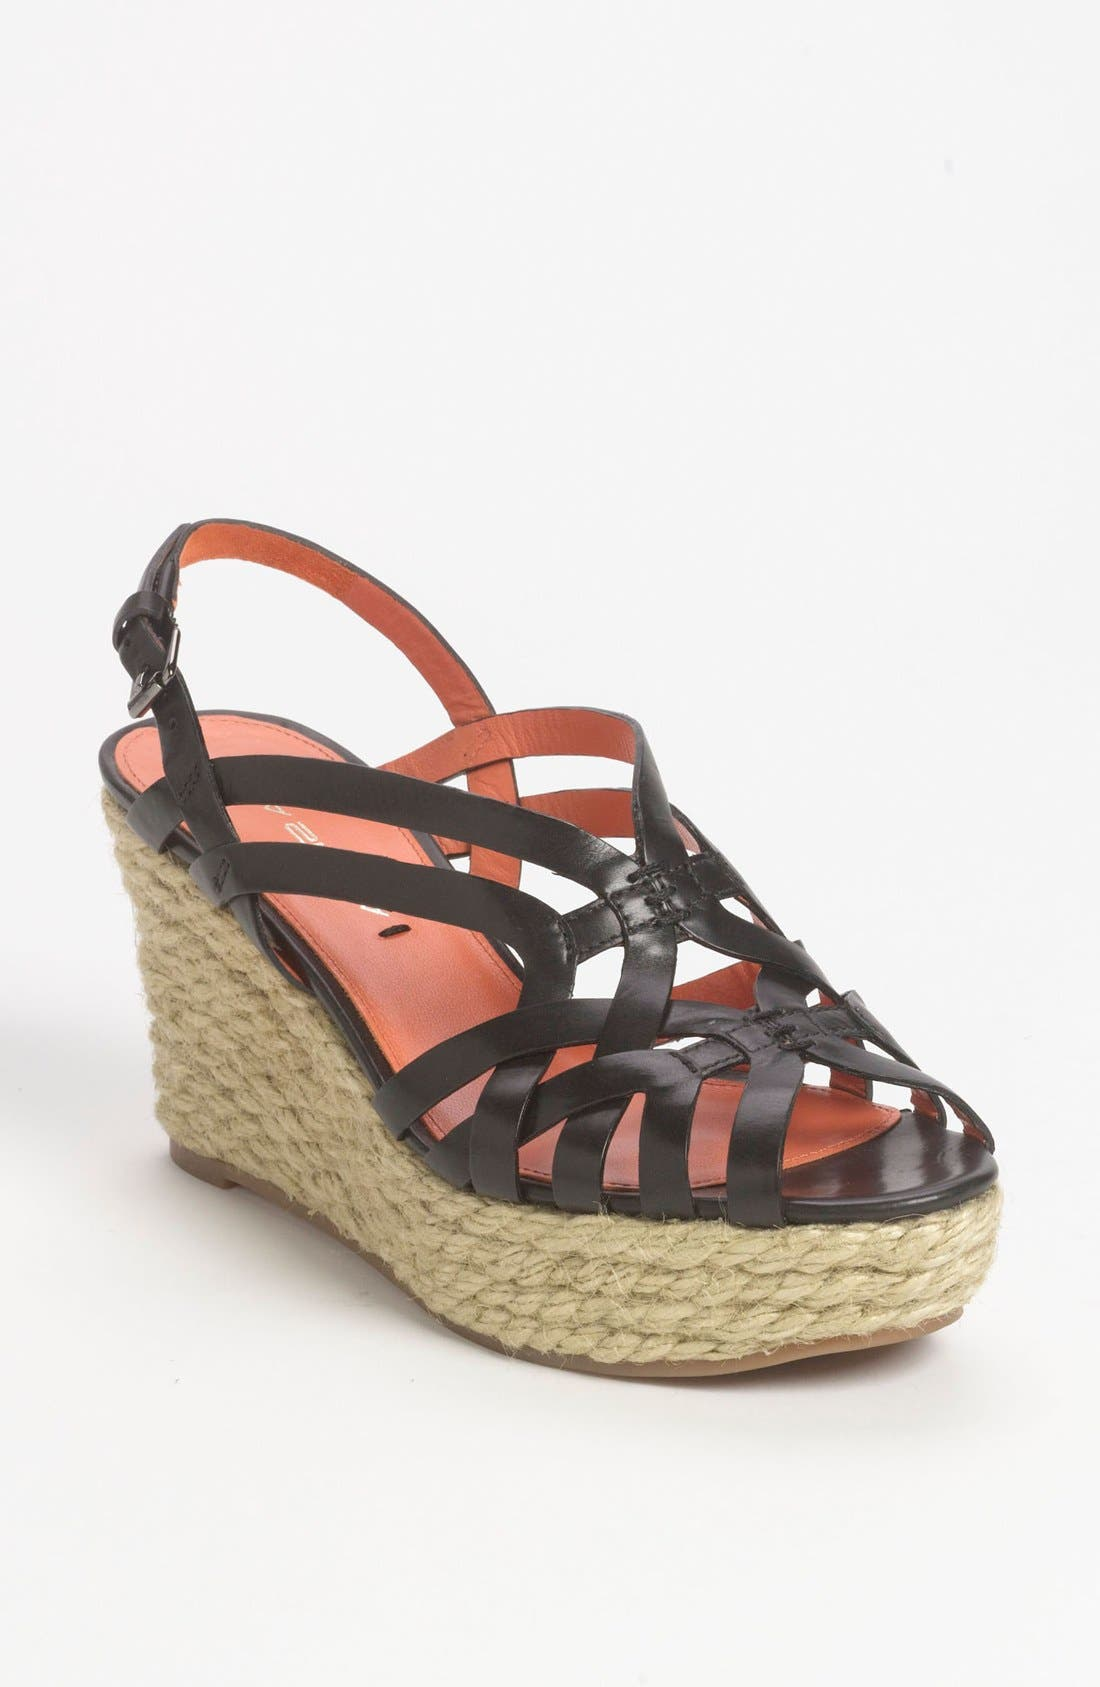 Alternate Image 1 Selected - Via Spiga 'Mabel' Wedge Sandal (Special Purchase)